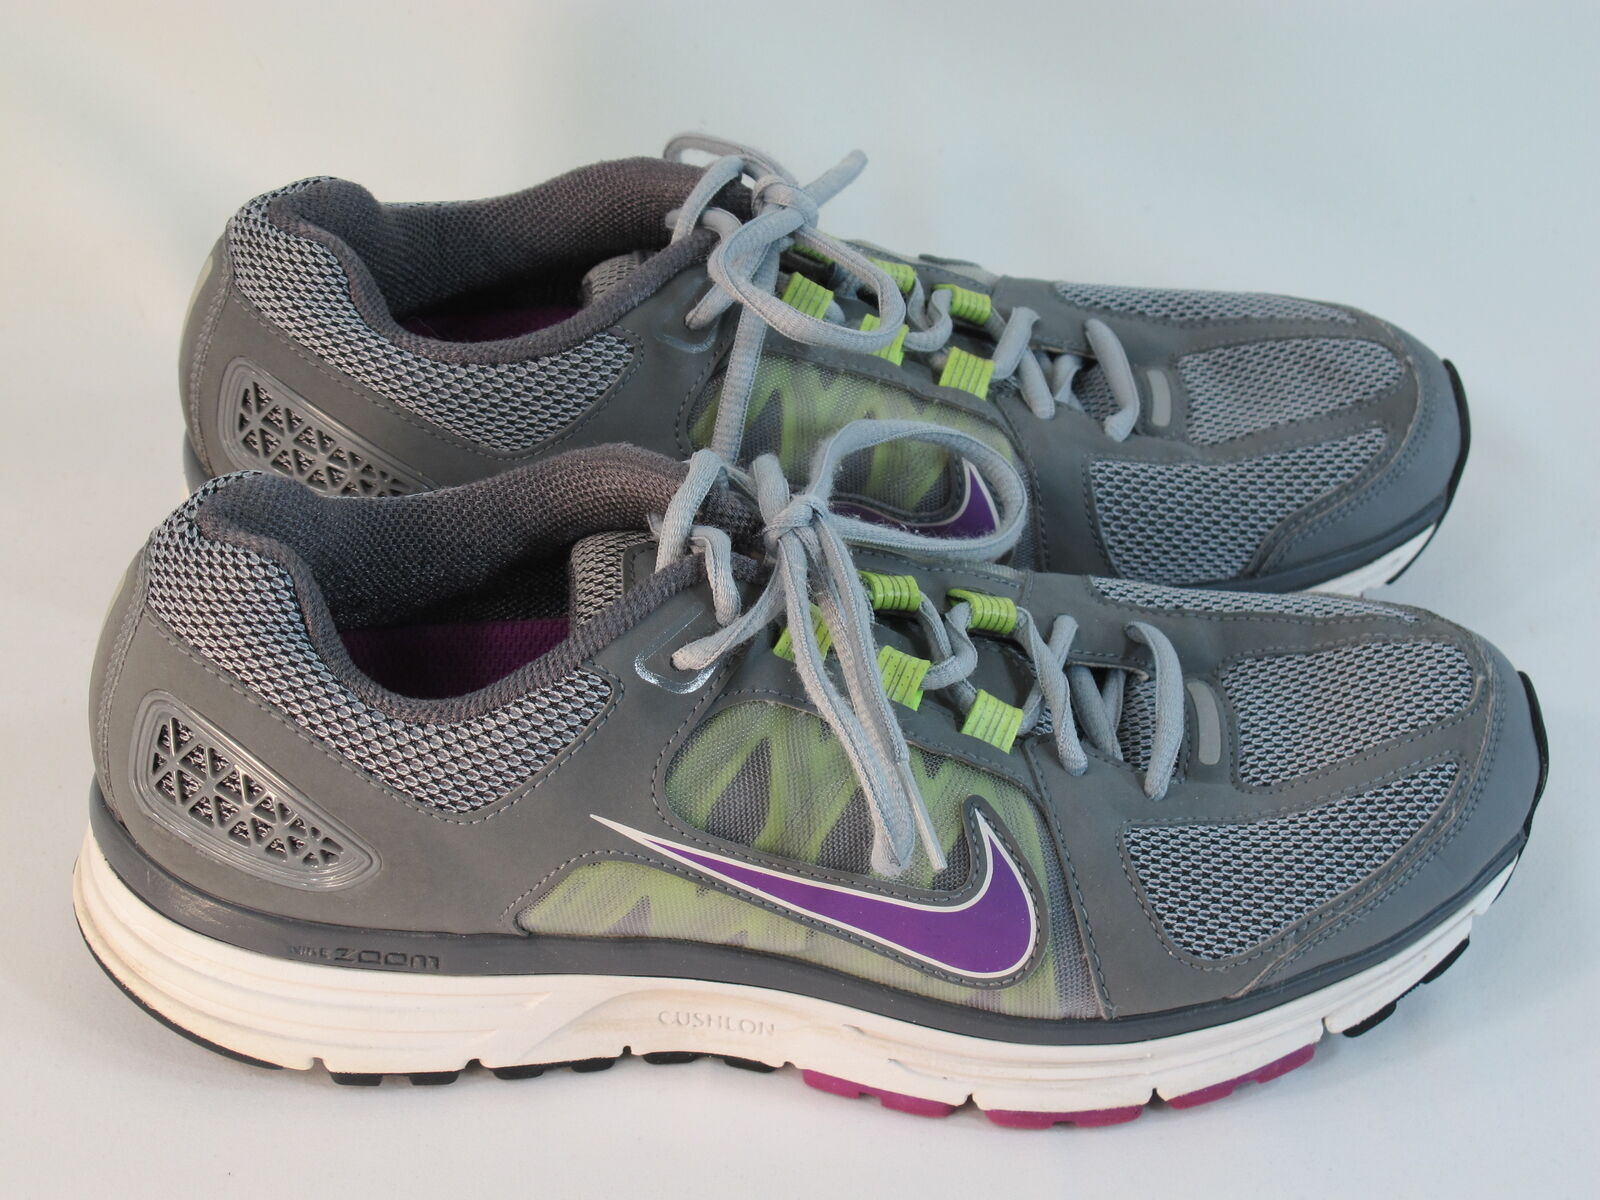 Nike Zoom Vomero+ 7 Running Shoes Women's Size 9.5 US Excellent Plus Condition